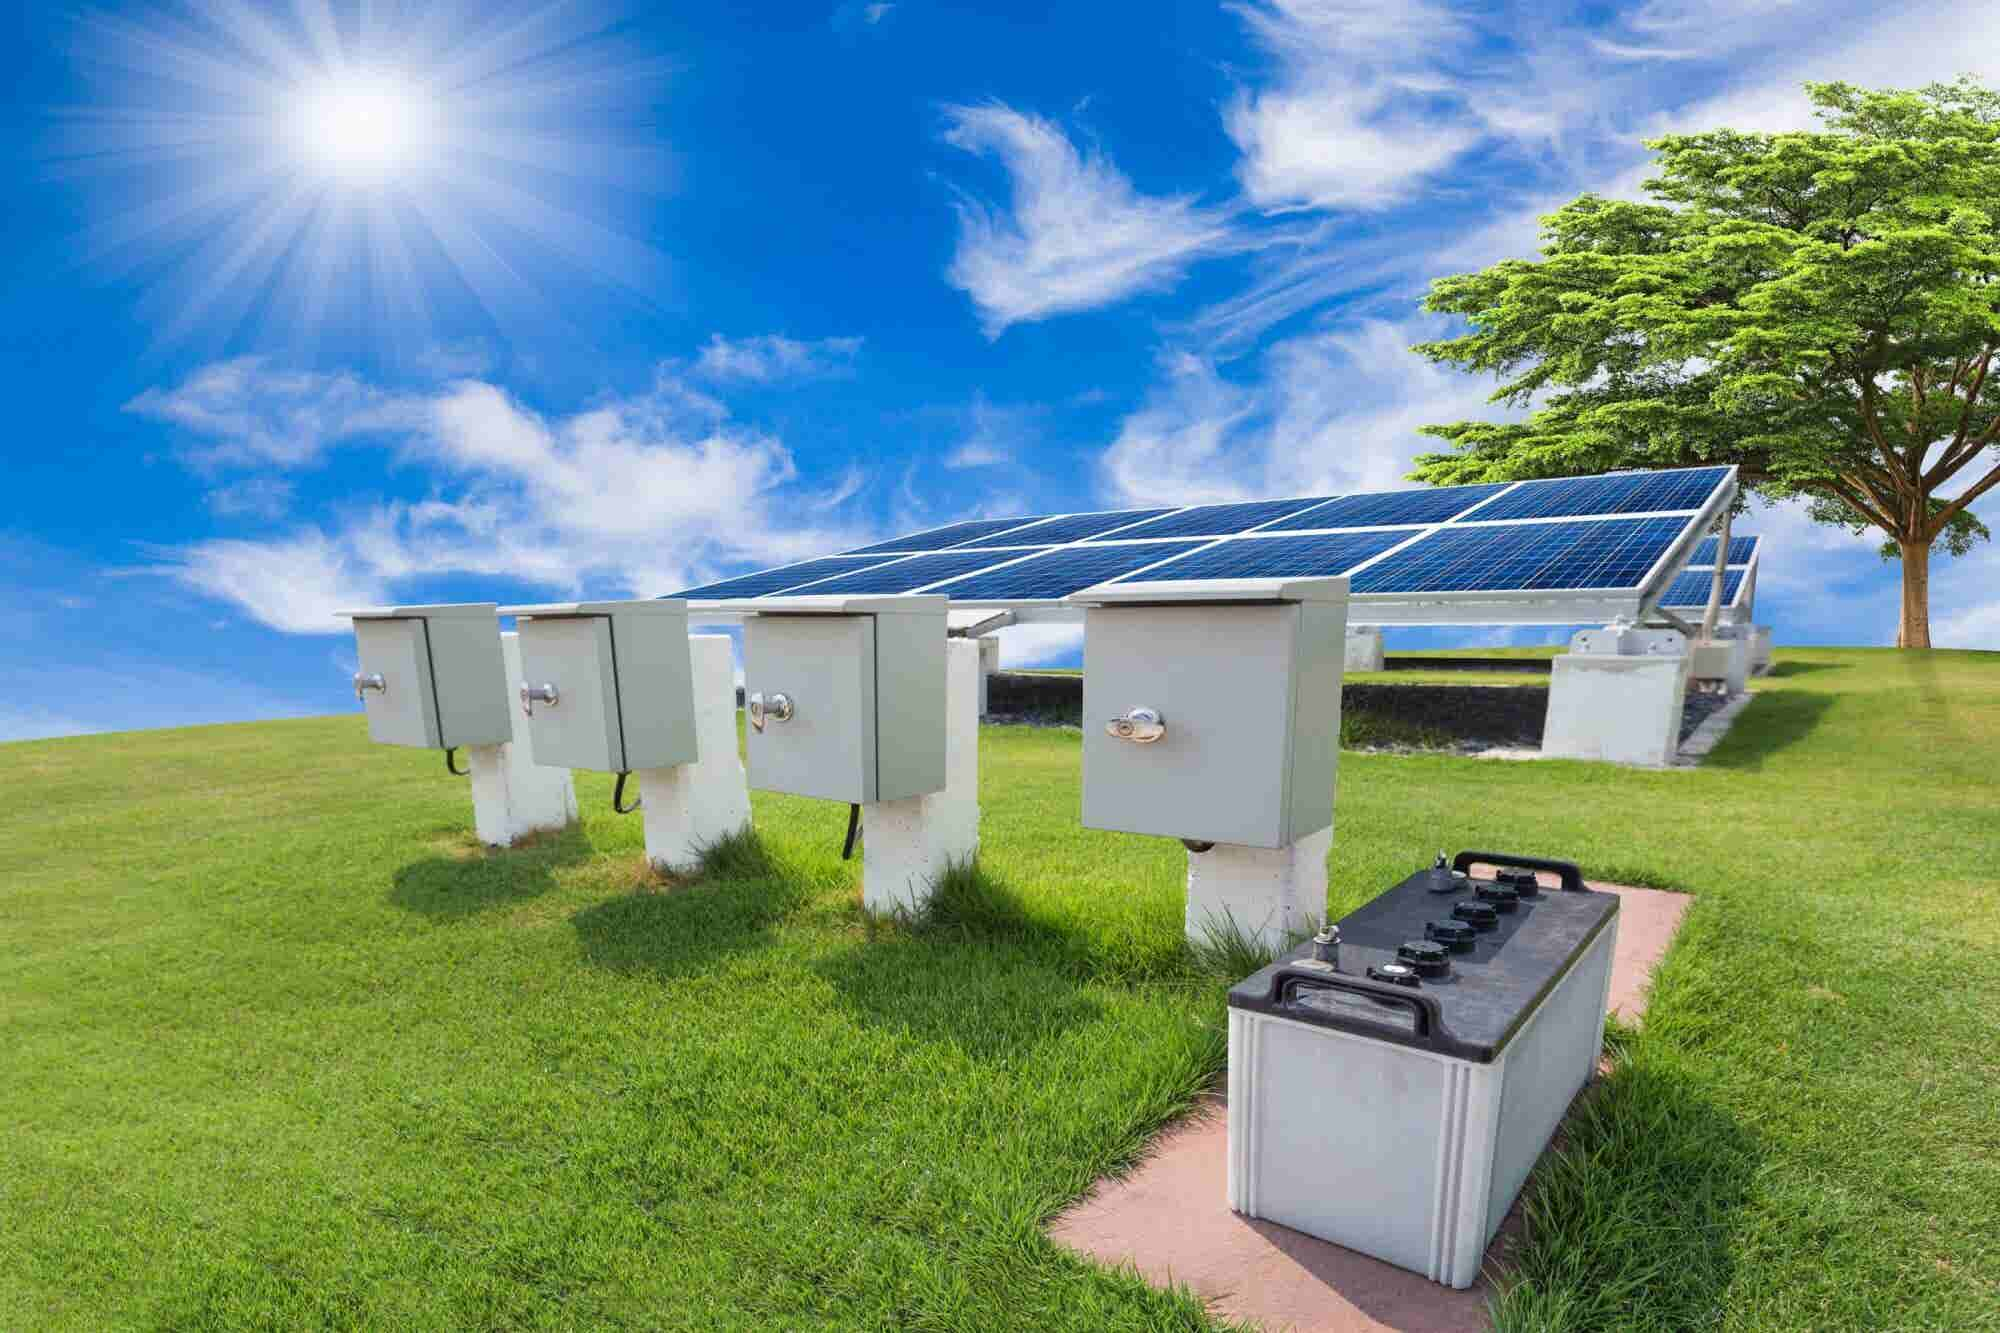 India Will Be Home to World's First Ever Thermal Battery Plant